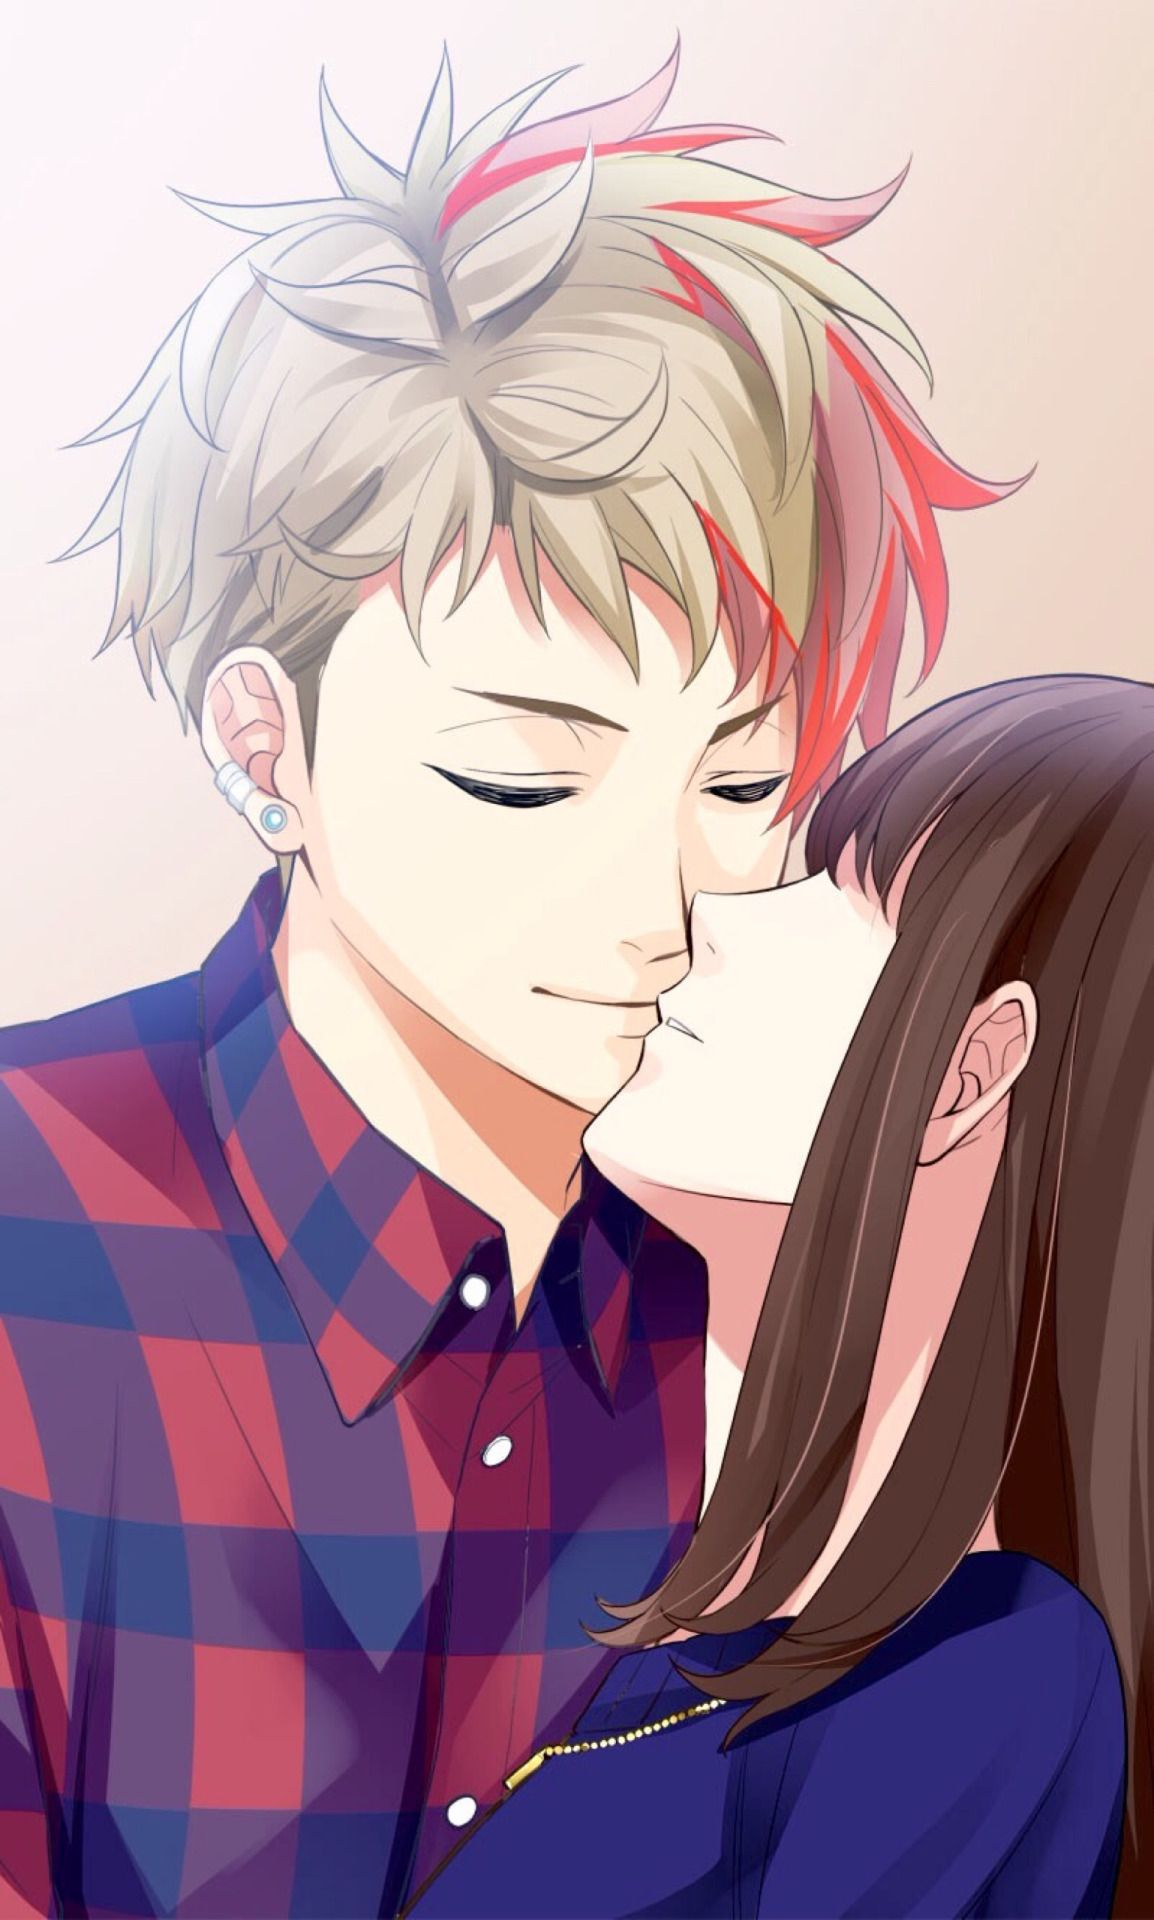 Pin by alga jhnkf on Otome Games